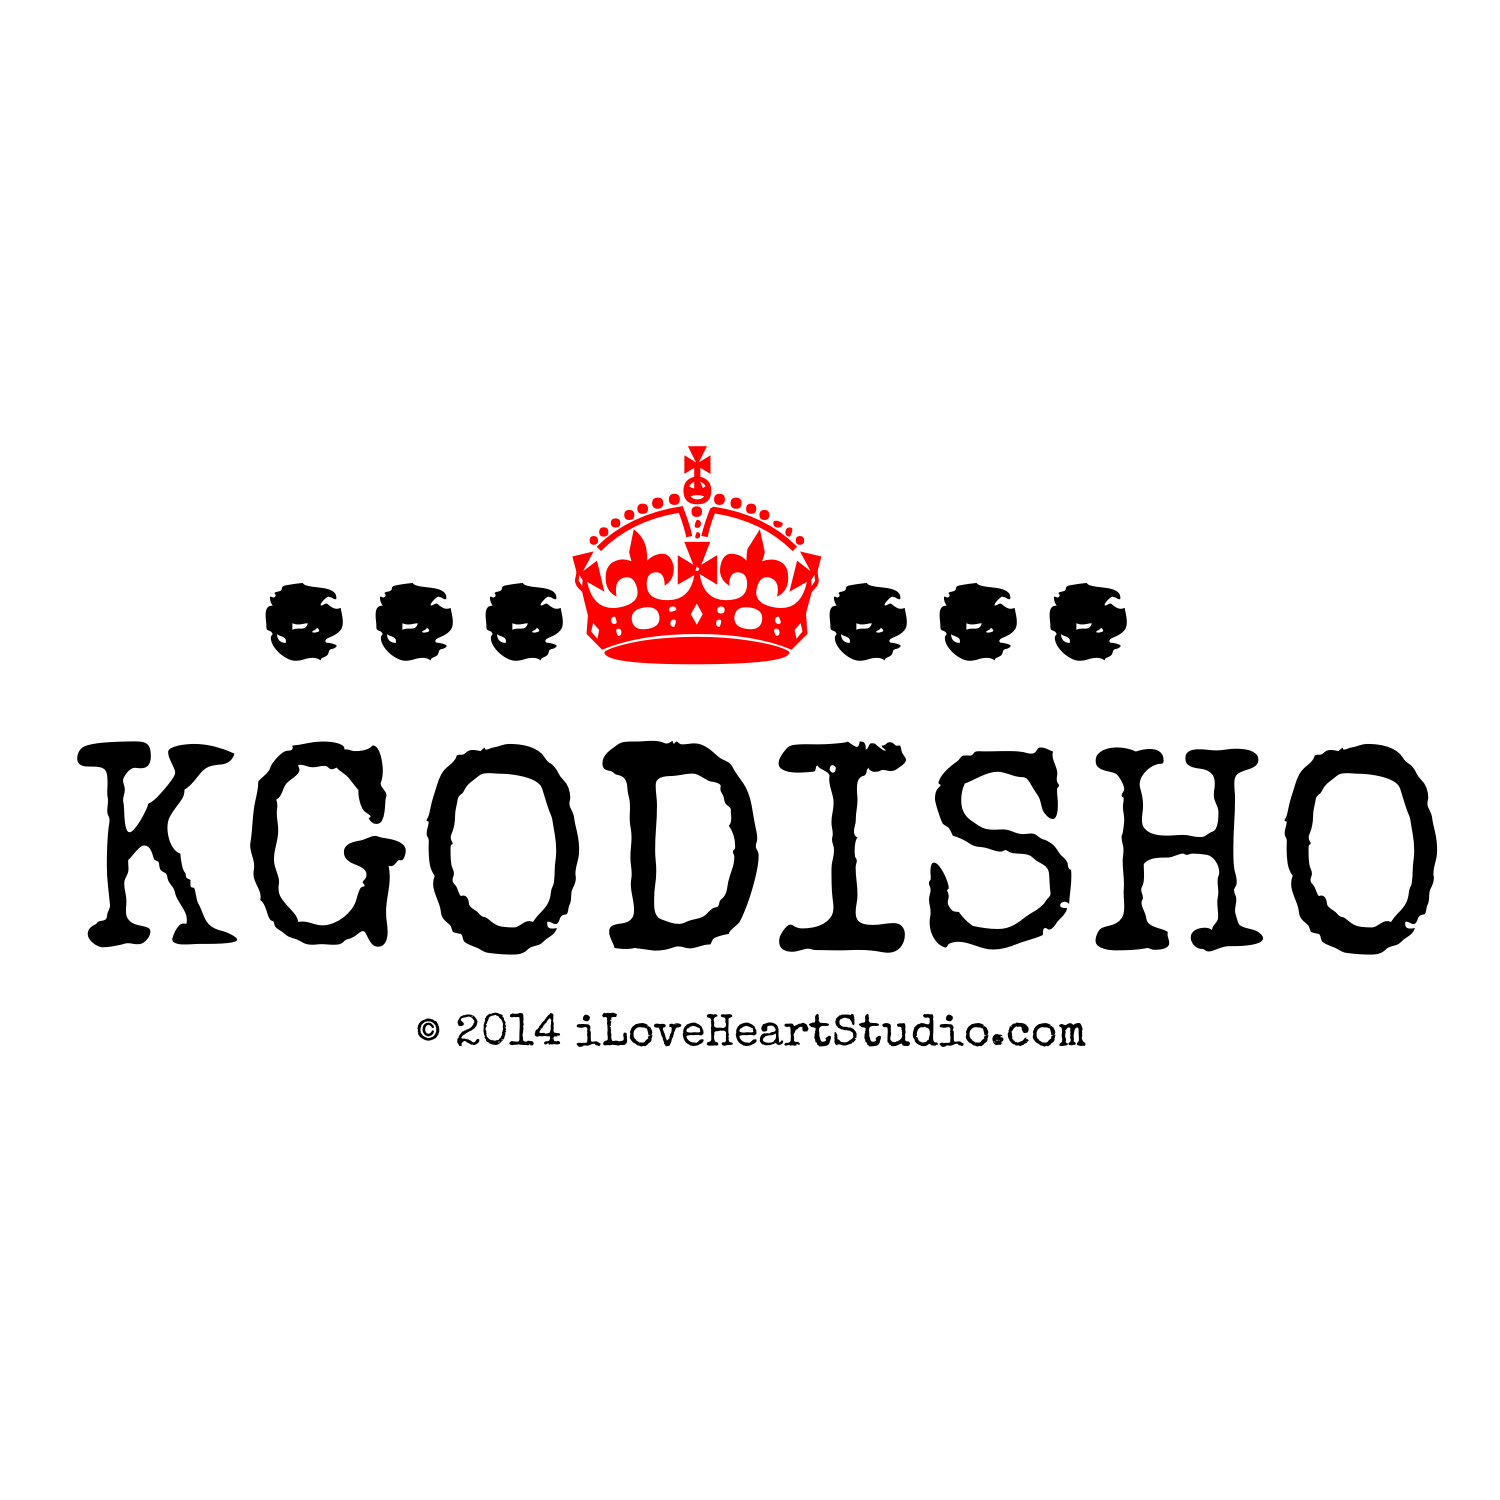 Crown Kgodisho Design On T Shirt Poster Mug And